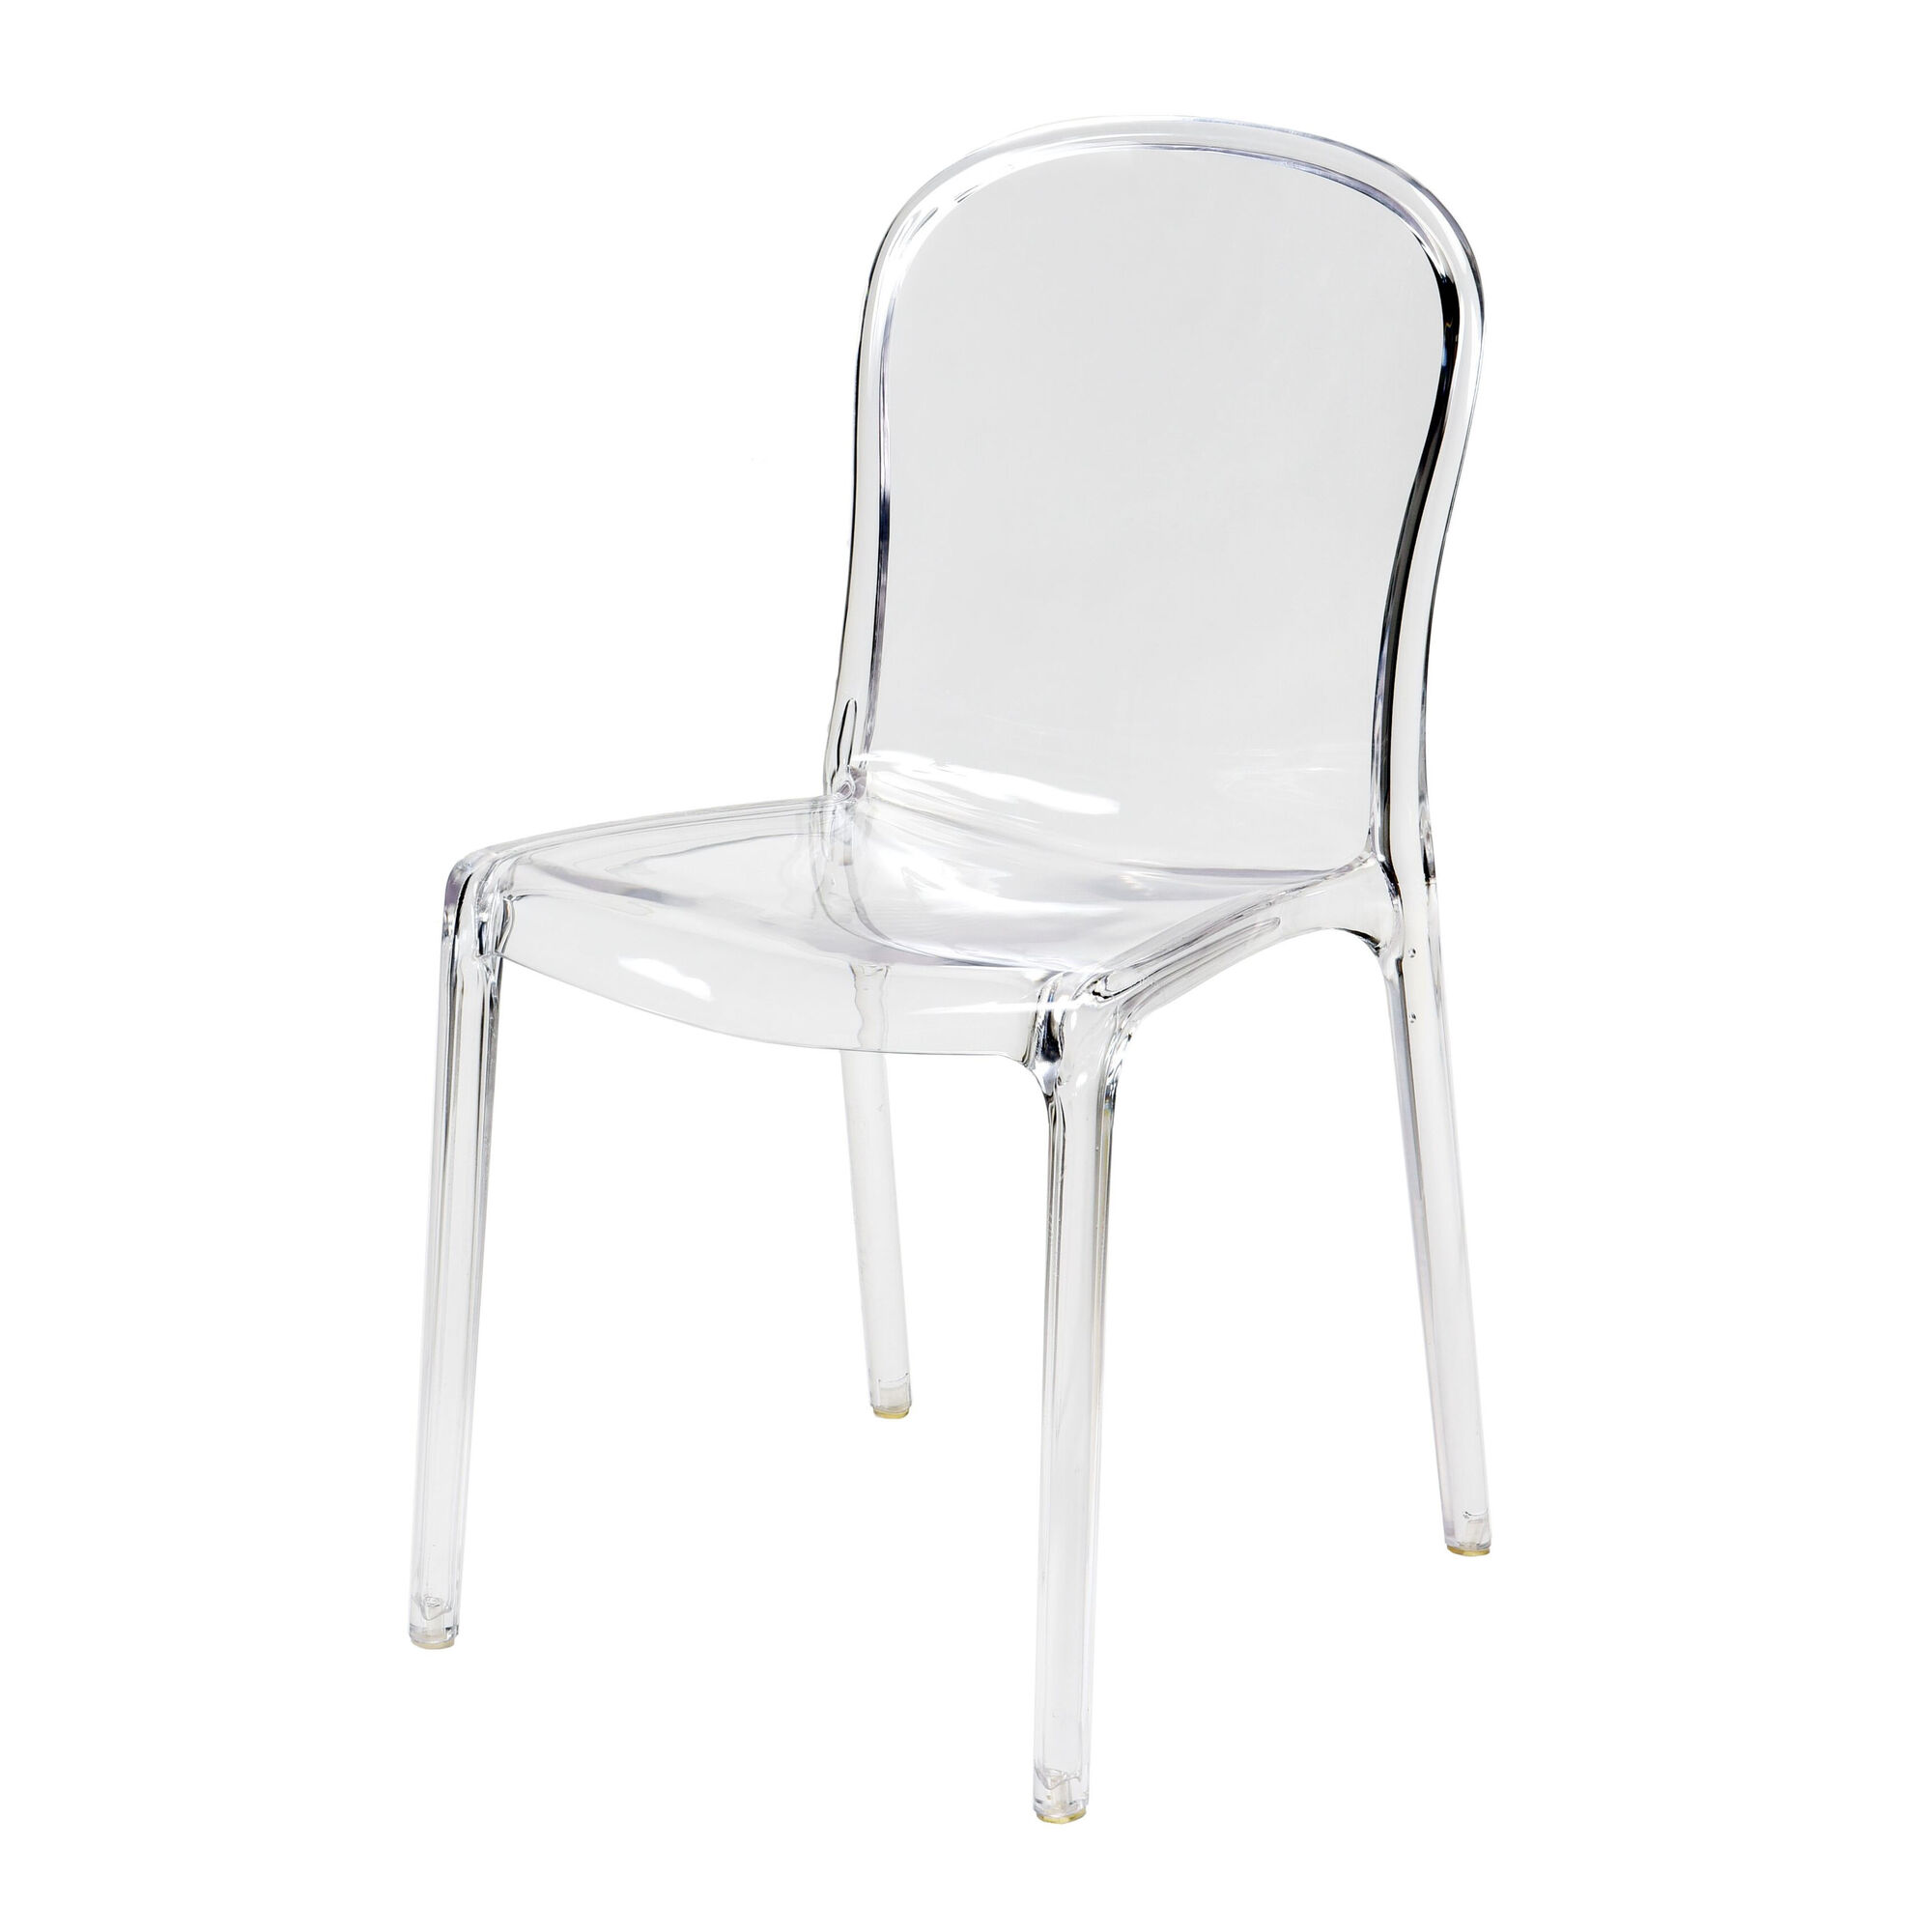 Genoa Polycarbonate Dining Chair - Clear. Hover to zoom